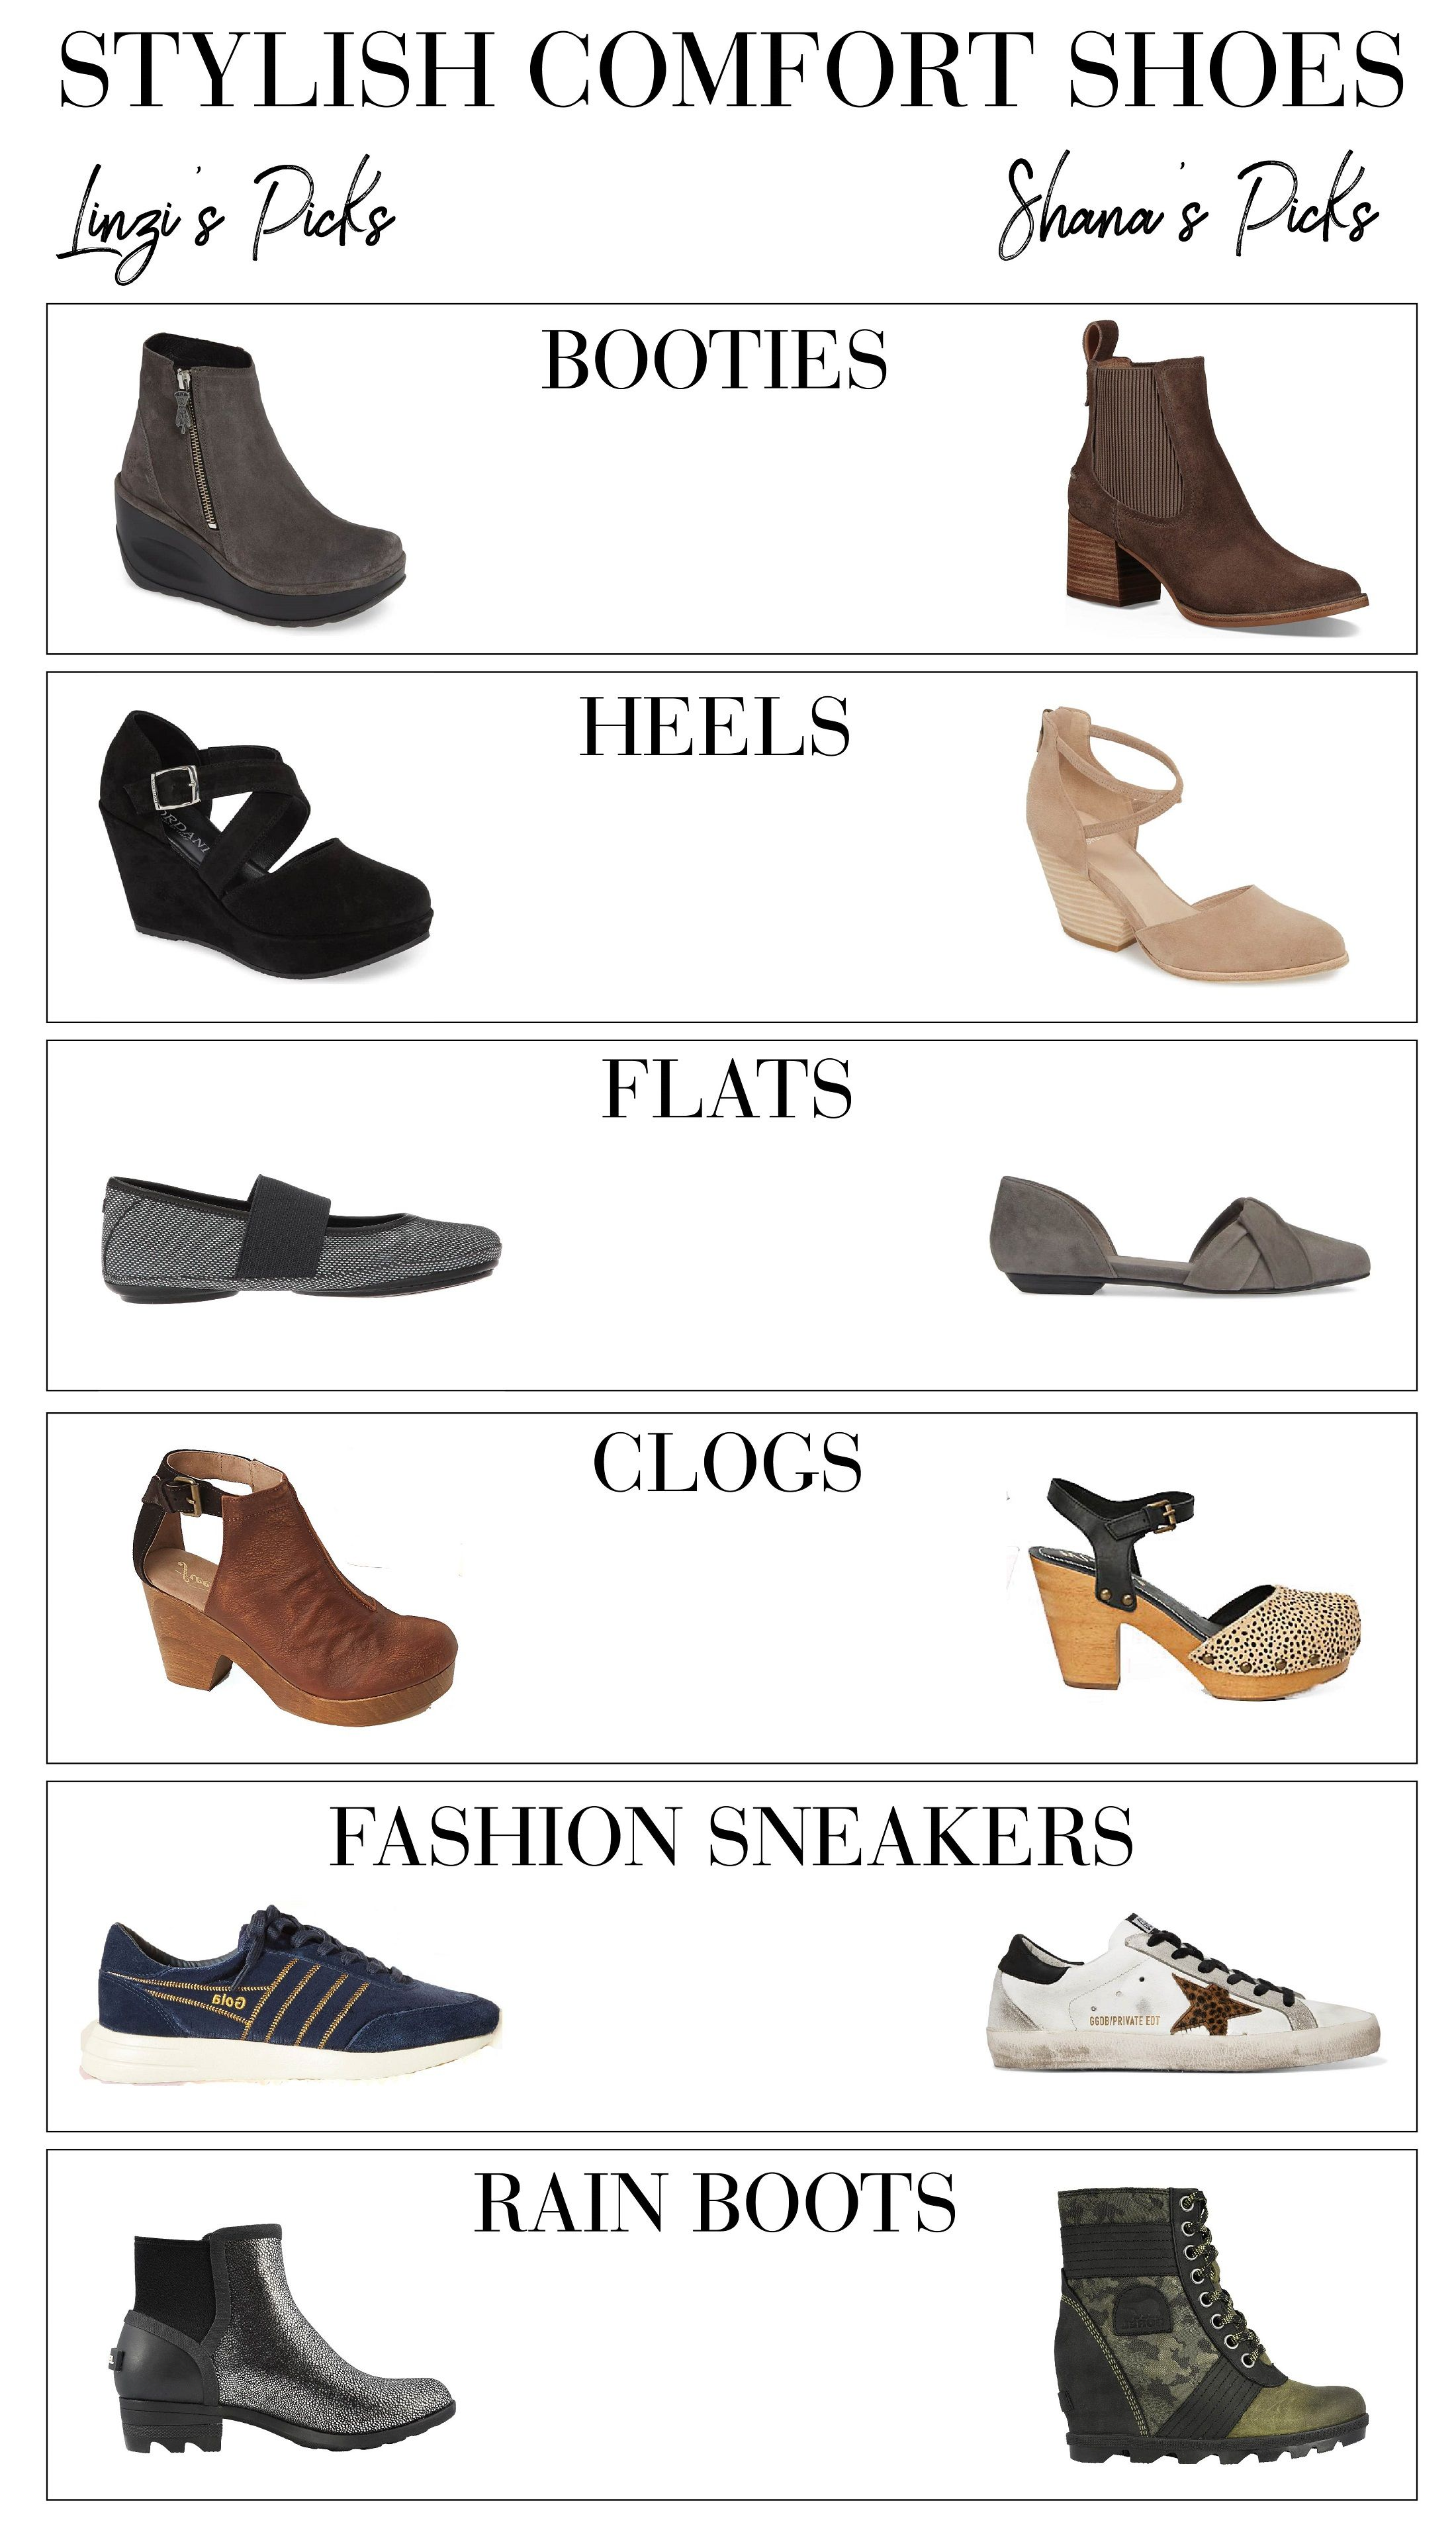 Stylish Comfortable Shoes You Actually Want to Wear